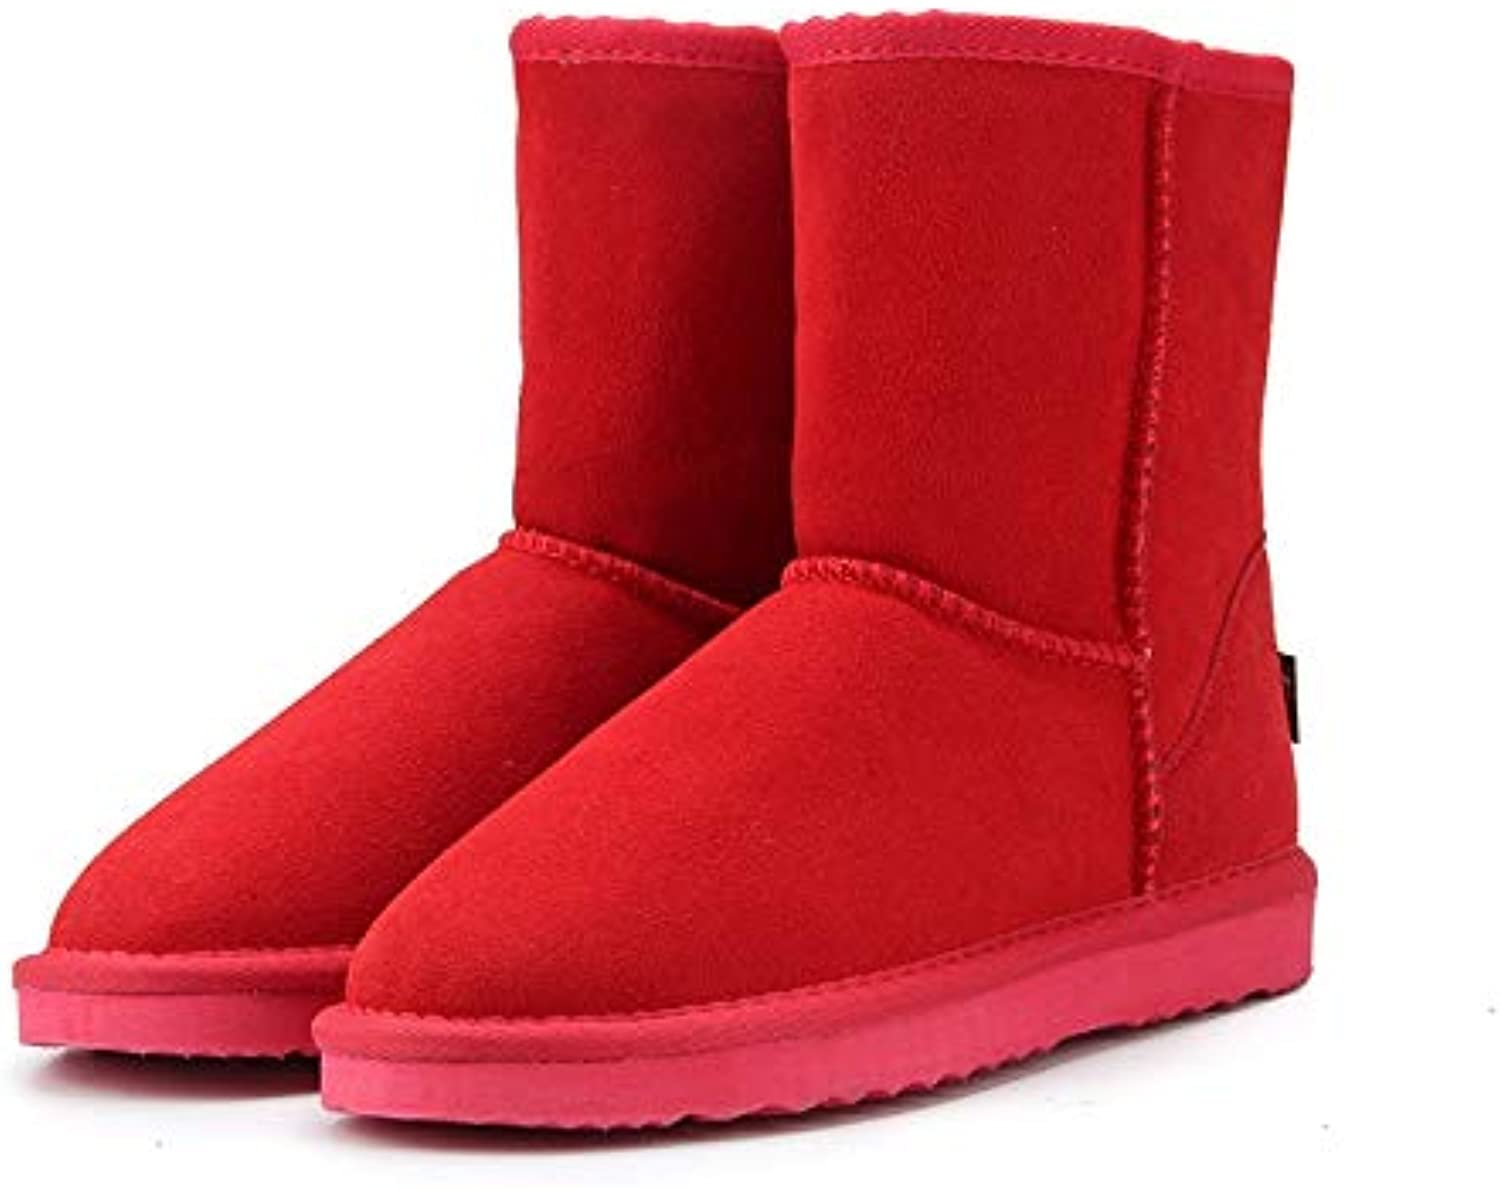 Fumak Classic Genuine Cowhide Leather Snow Boots 100% Wool Women Boots Warm Winter shoes for Women Large Size 34-44